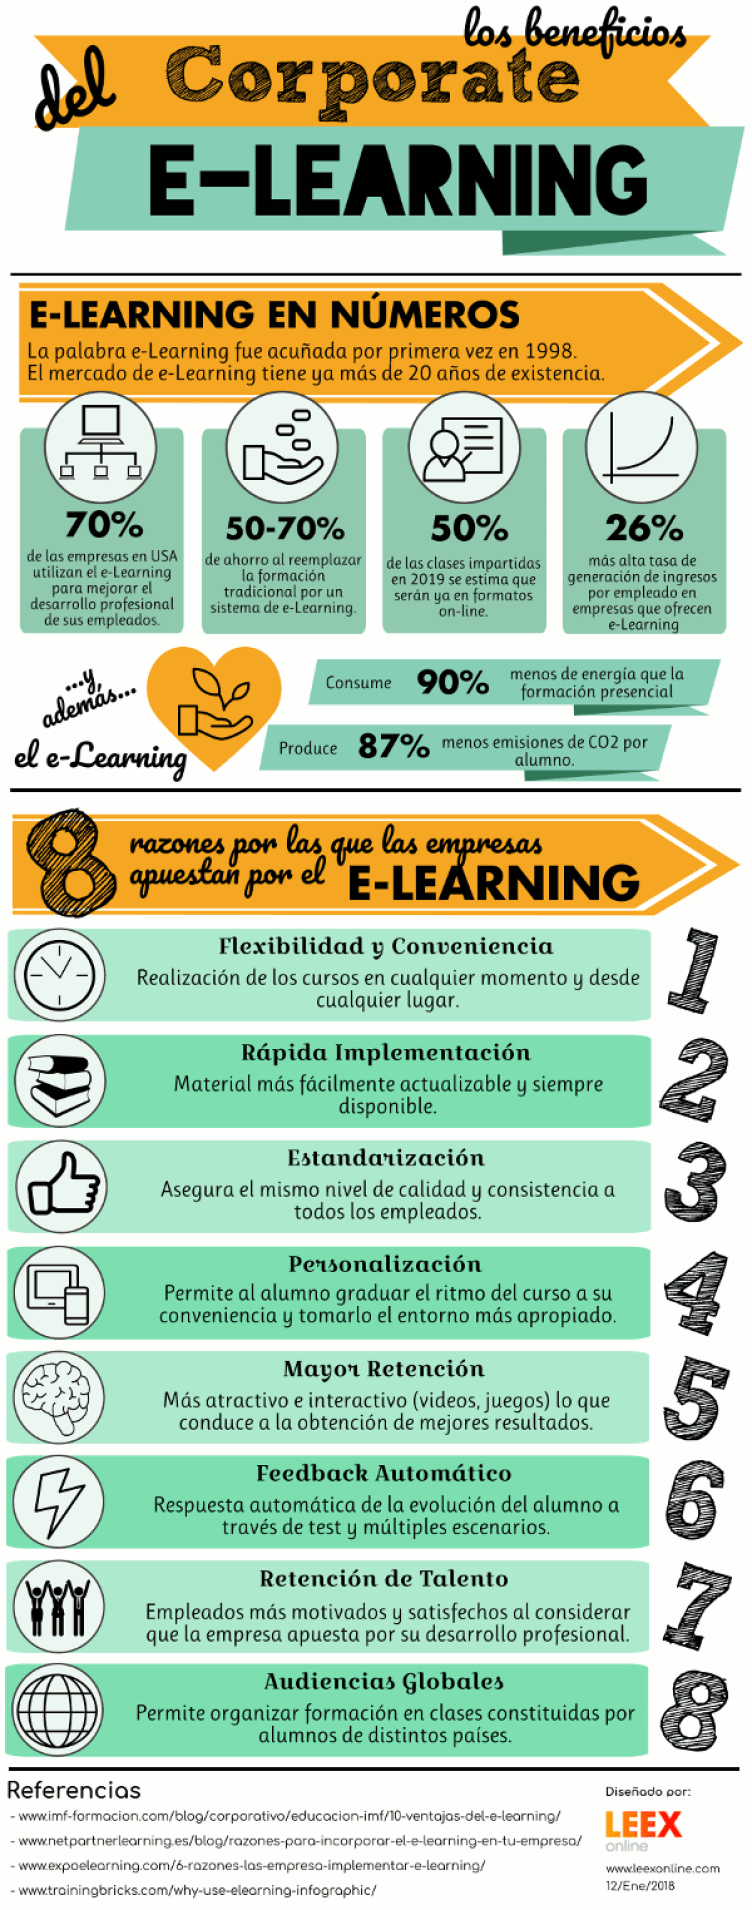 Las ventajas del corporate eLearning